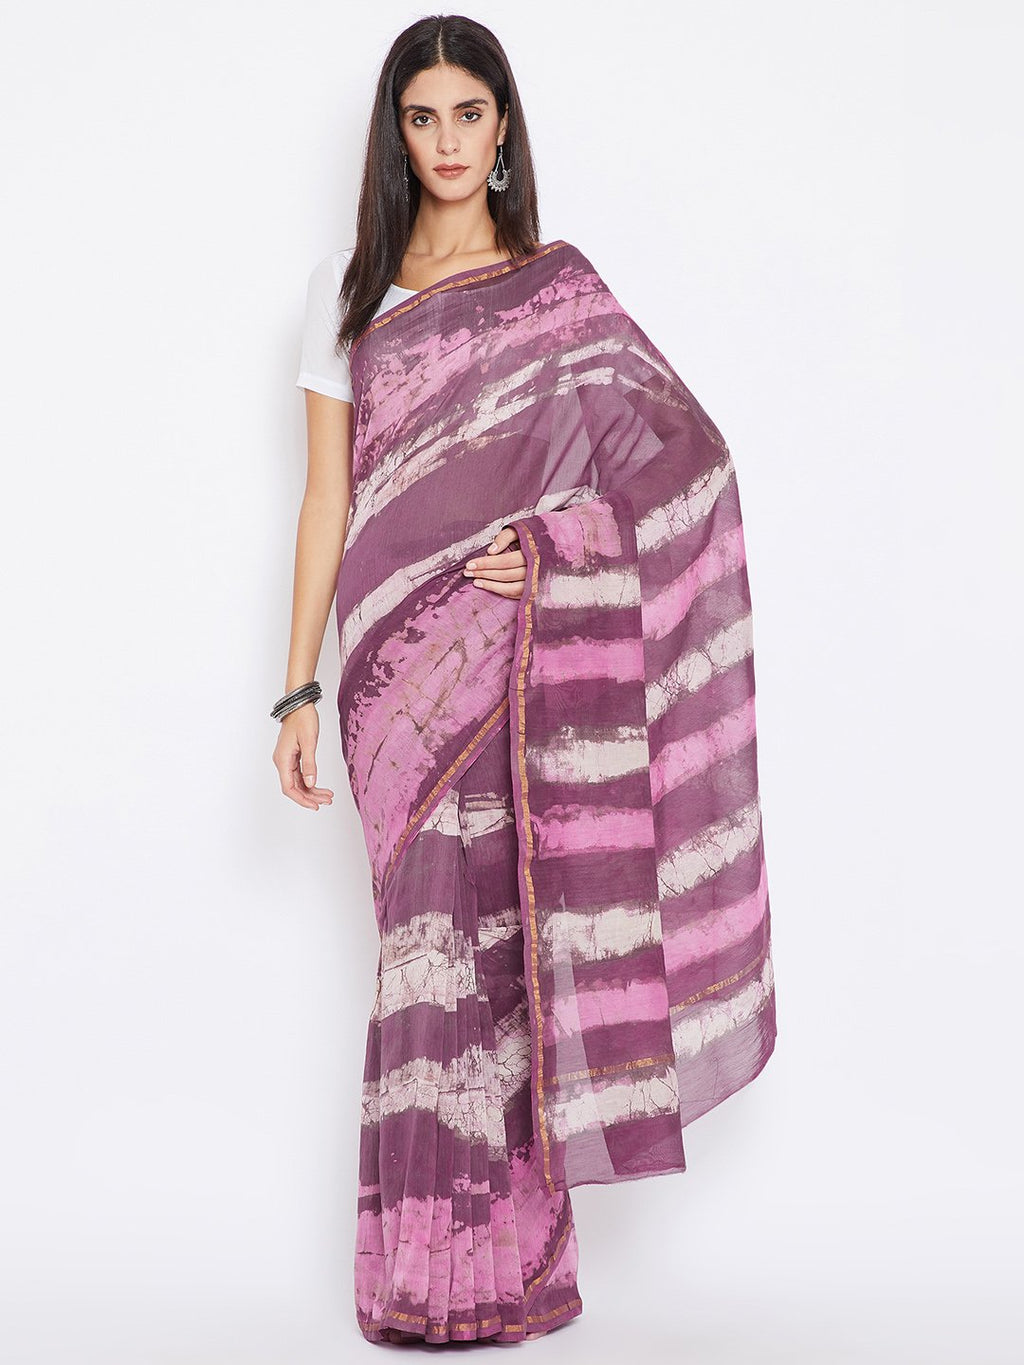 Kalakari India Magenta & Off-White Chanderi Silk Cotton Hand Block Print Handcrafted Saree-Saree-Kalakari India-BHKPSA0009-Chanderi, Dabu, Geographical Indication, Hand Blocks, Hand Crafted, Heritage Prints, Natural Dyes, Sarees, Sustainable Fabrics-[Linen,Ethnic,wear,Fashionista,Handloom,Handicraft,Indigo,blockprint,block,print,Cotton,Chanderi,Blue, latest,classy,party,bollywood,trendy,summer,style,traditional,formal,elegant,unique,style,hand,block,print, dabu,booti,gift,present,glamorous,affor